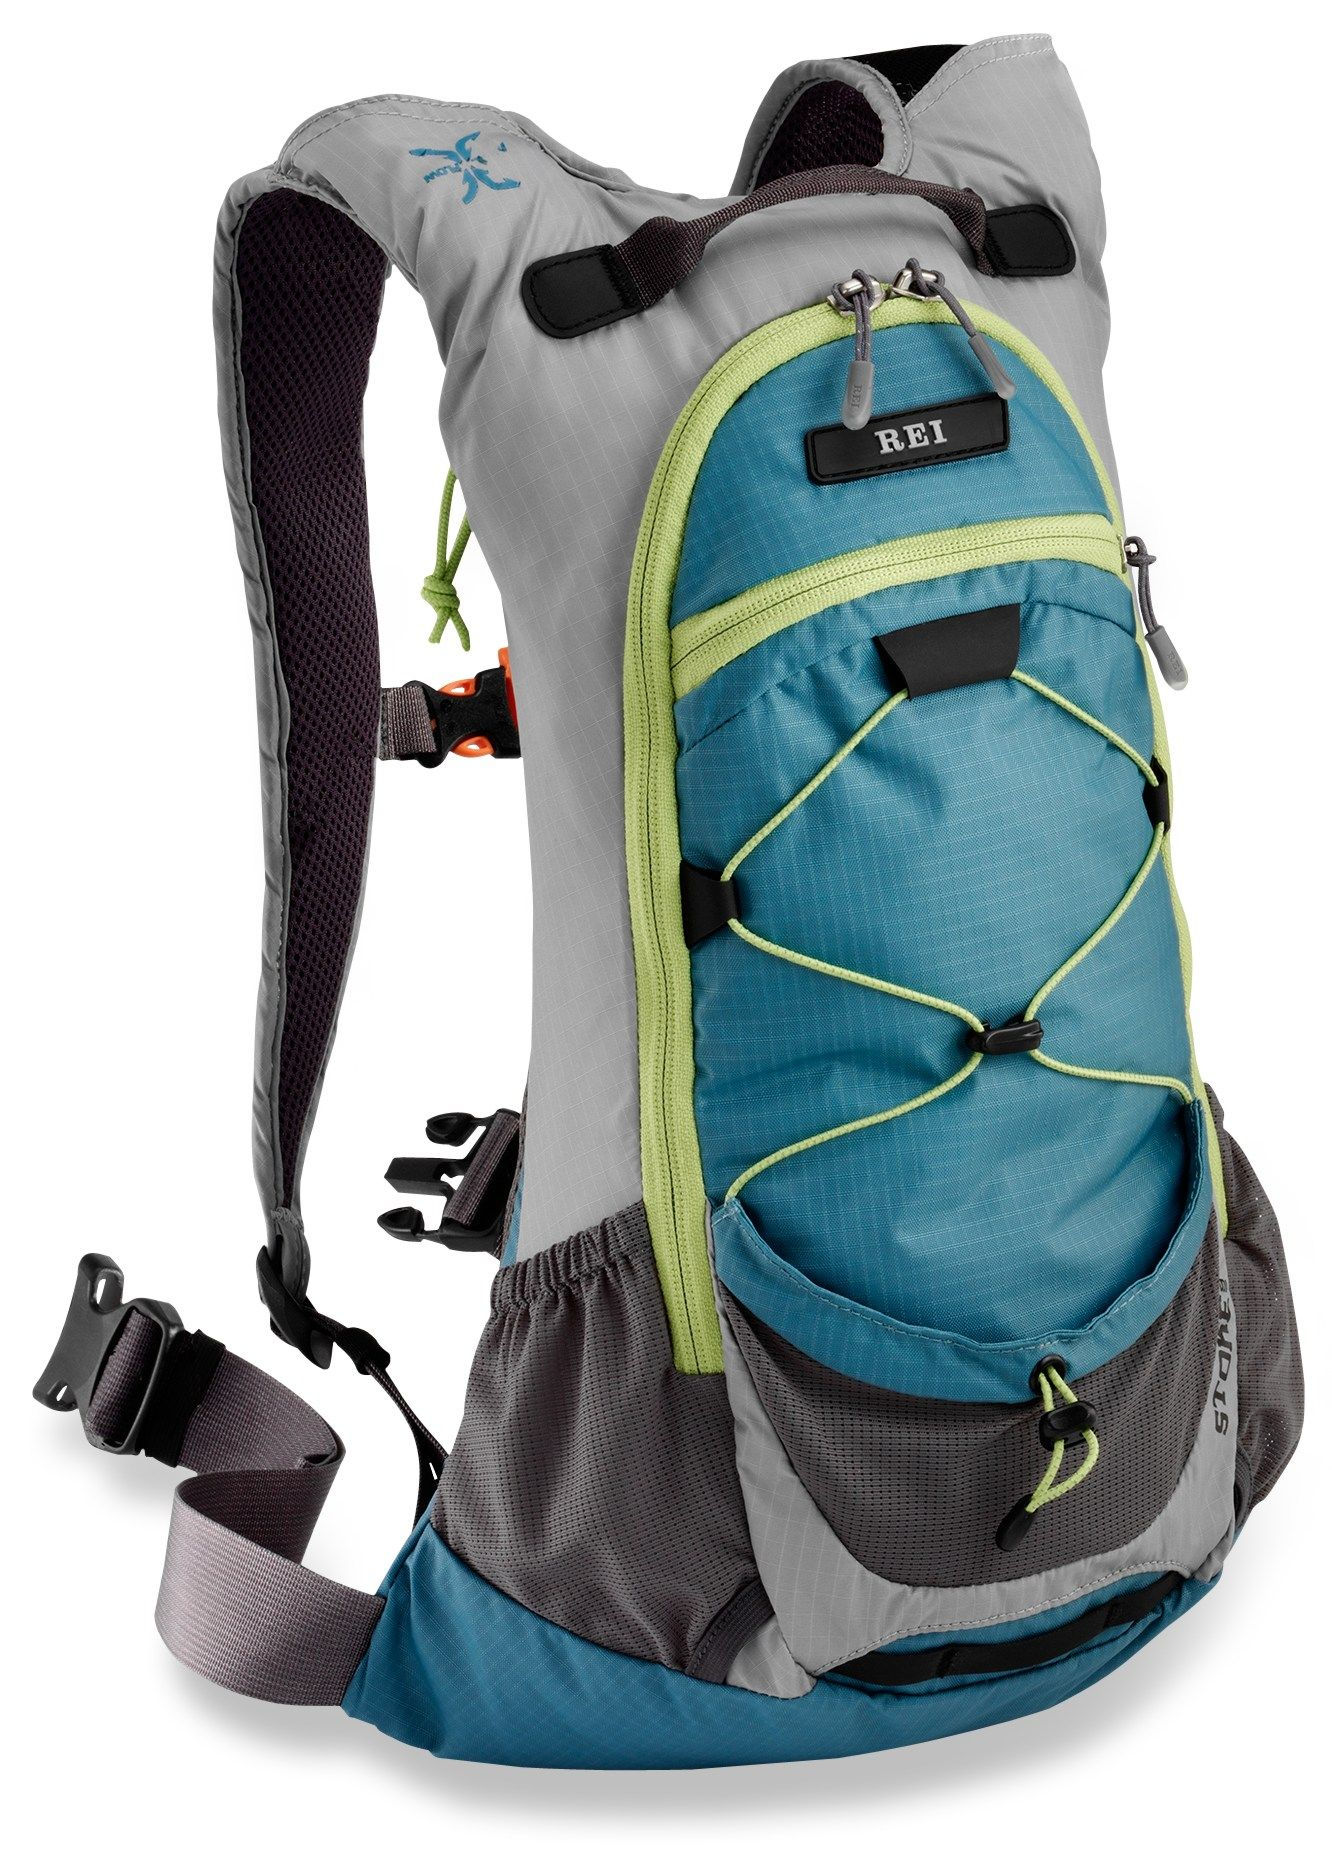 7a8ffdbb7a40 REI Stoke 9 Pack - Special Buy at REI-OUTLET.com